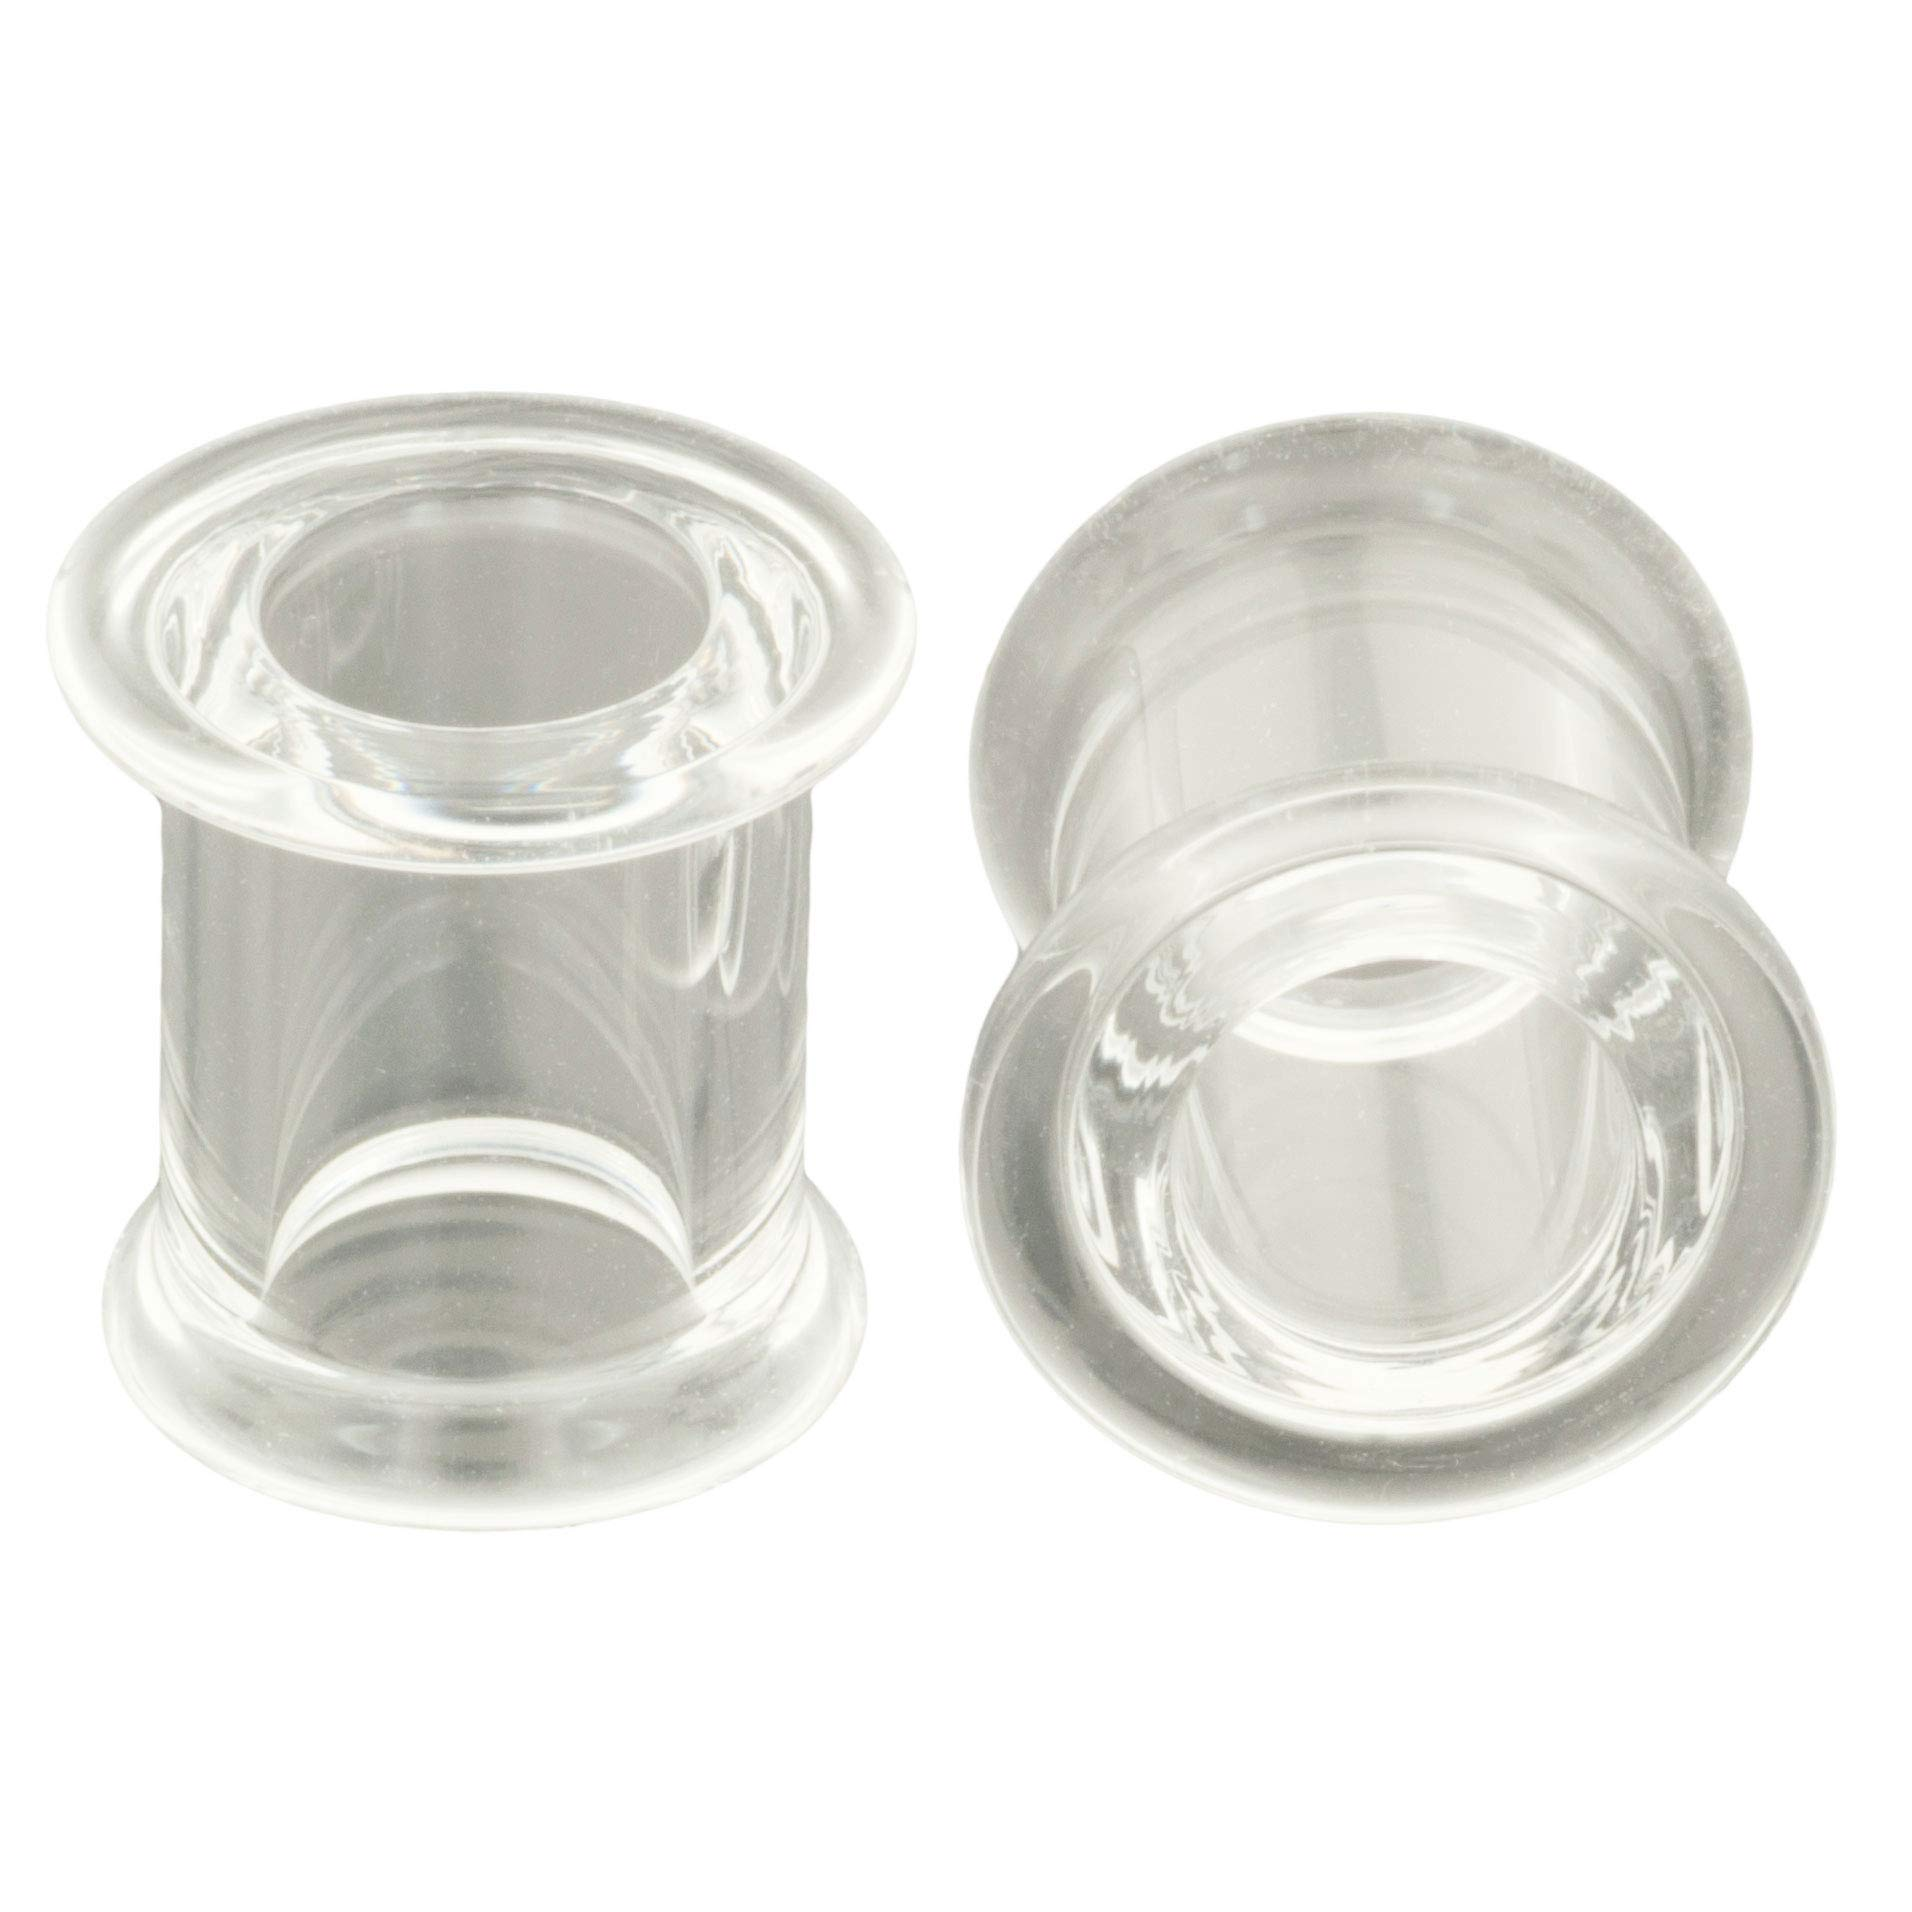 Pair of Clear Pyrex Glass Double Flared Eyelets: 3''